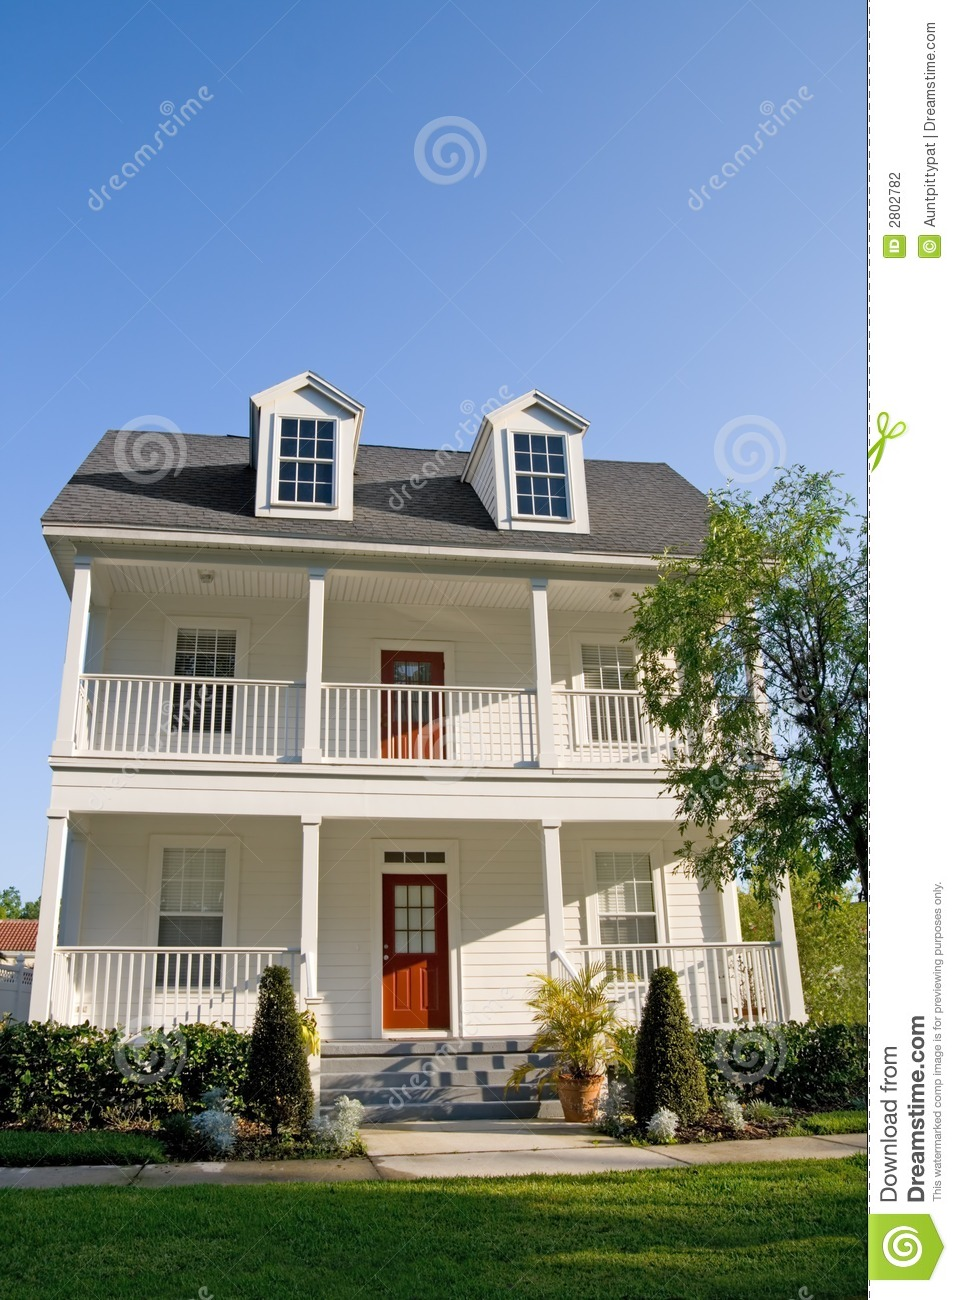 House plans and design house plans two story with balcony for Double storey house plans with balcony